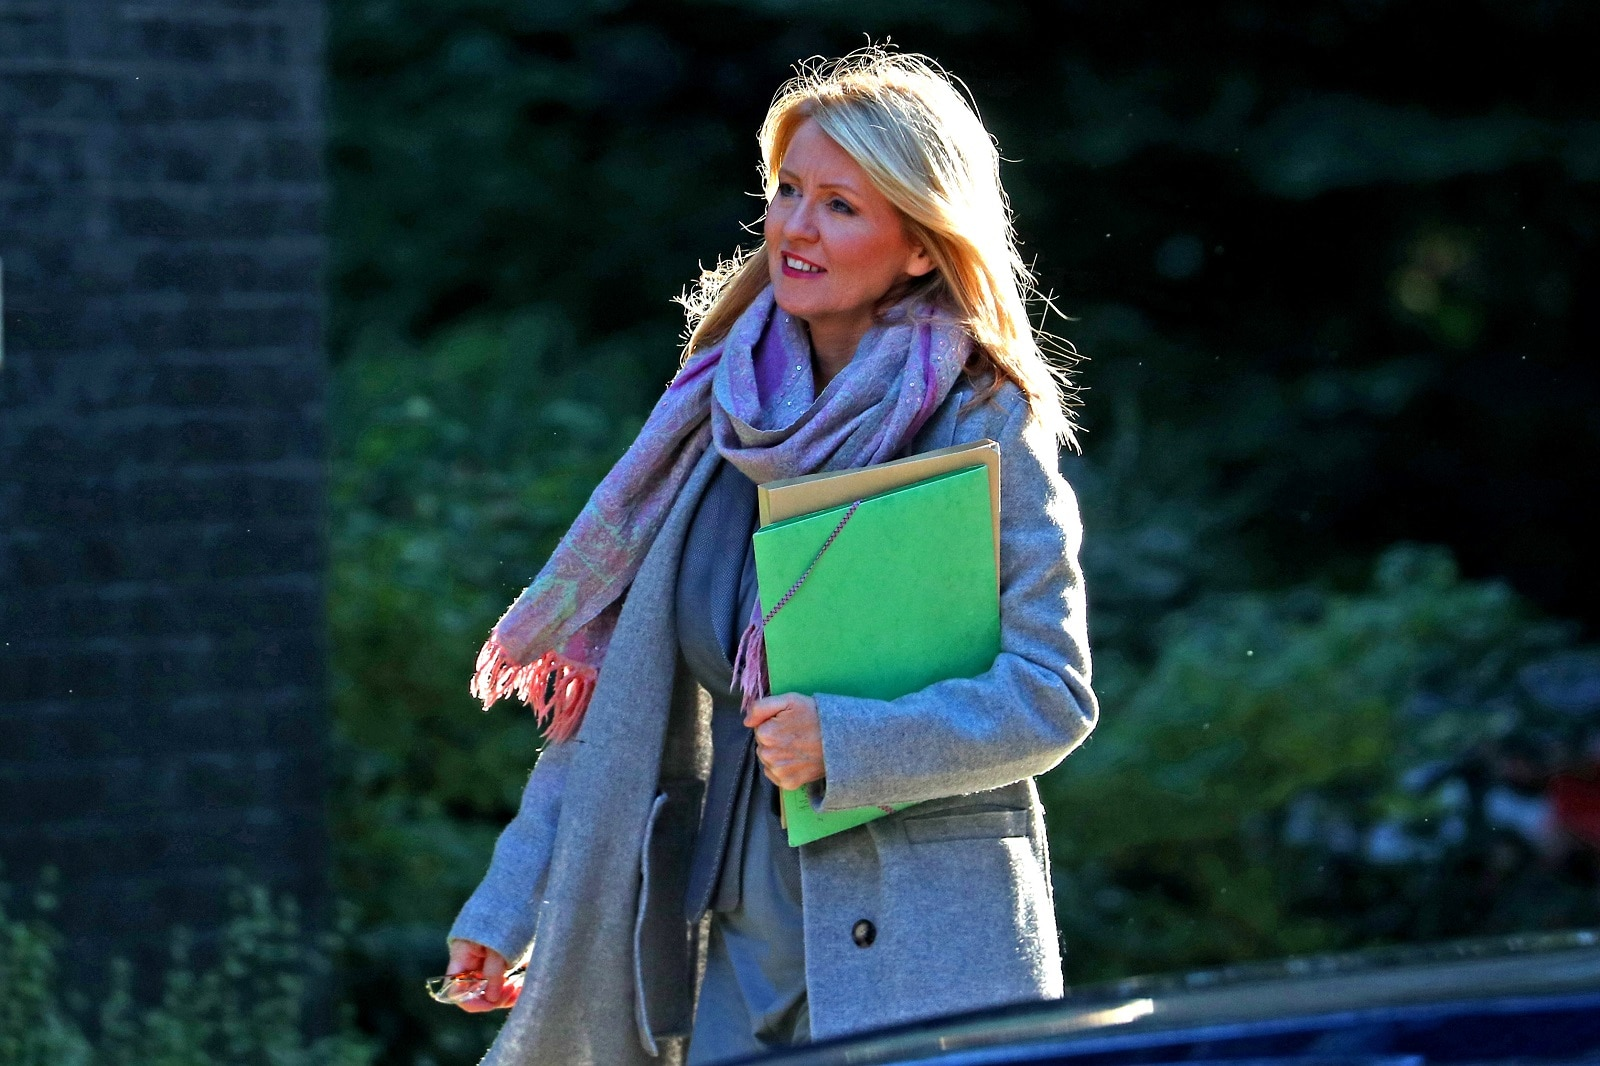 Britain must quit the European Union at the end of October even if that means leaving without a deal, Conservative lawmaker Esther McVey, one of the candidates to succeed Theresa May as prime minister, said on Sunday.